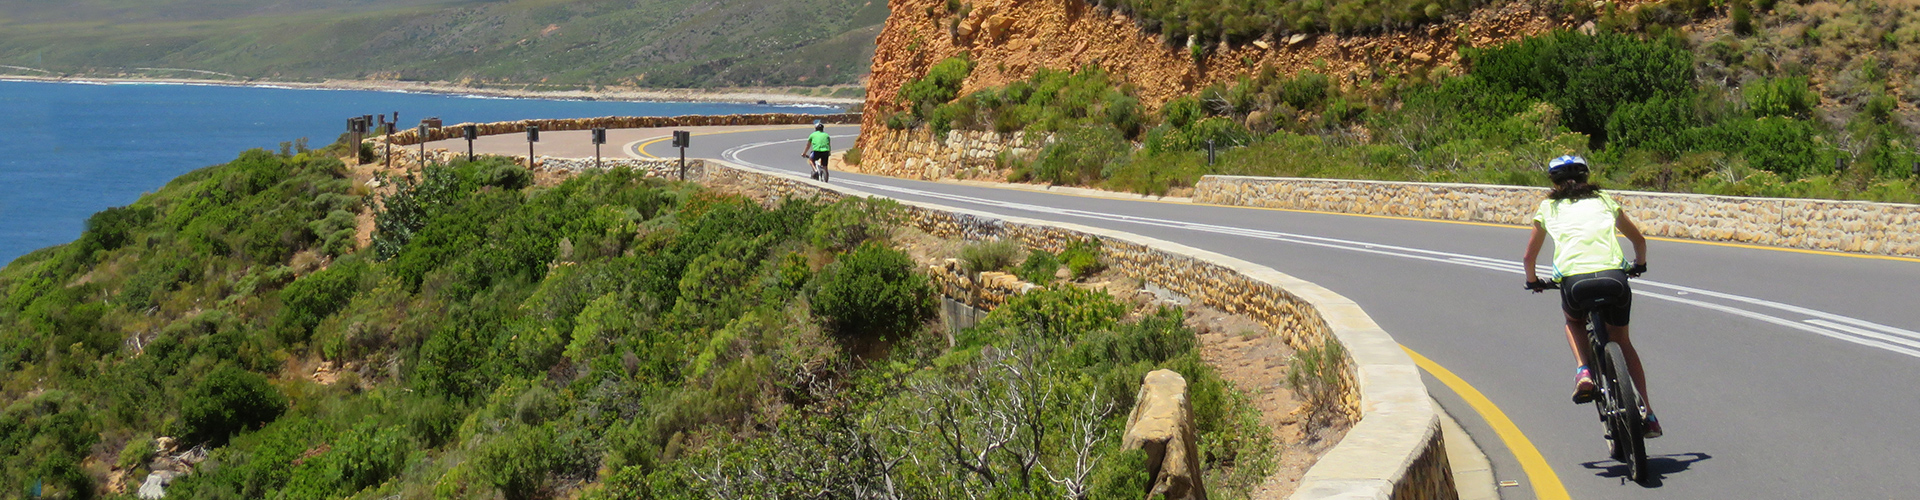 Cycle Cape Town and Winelands South Africa